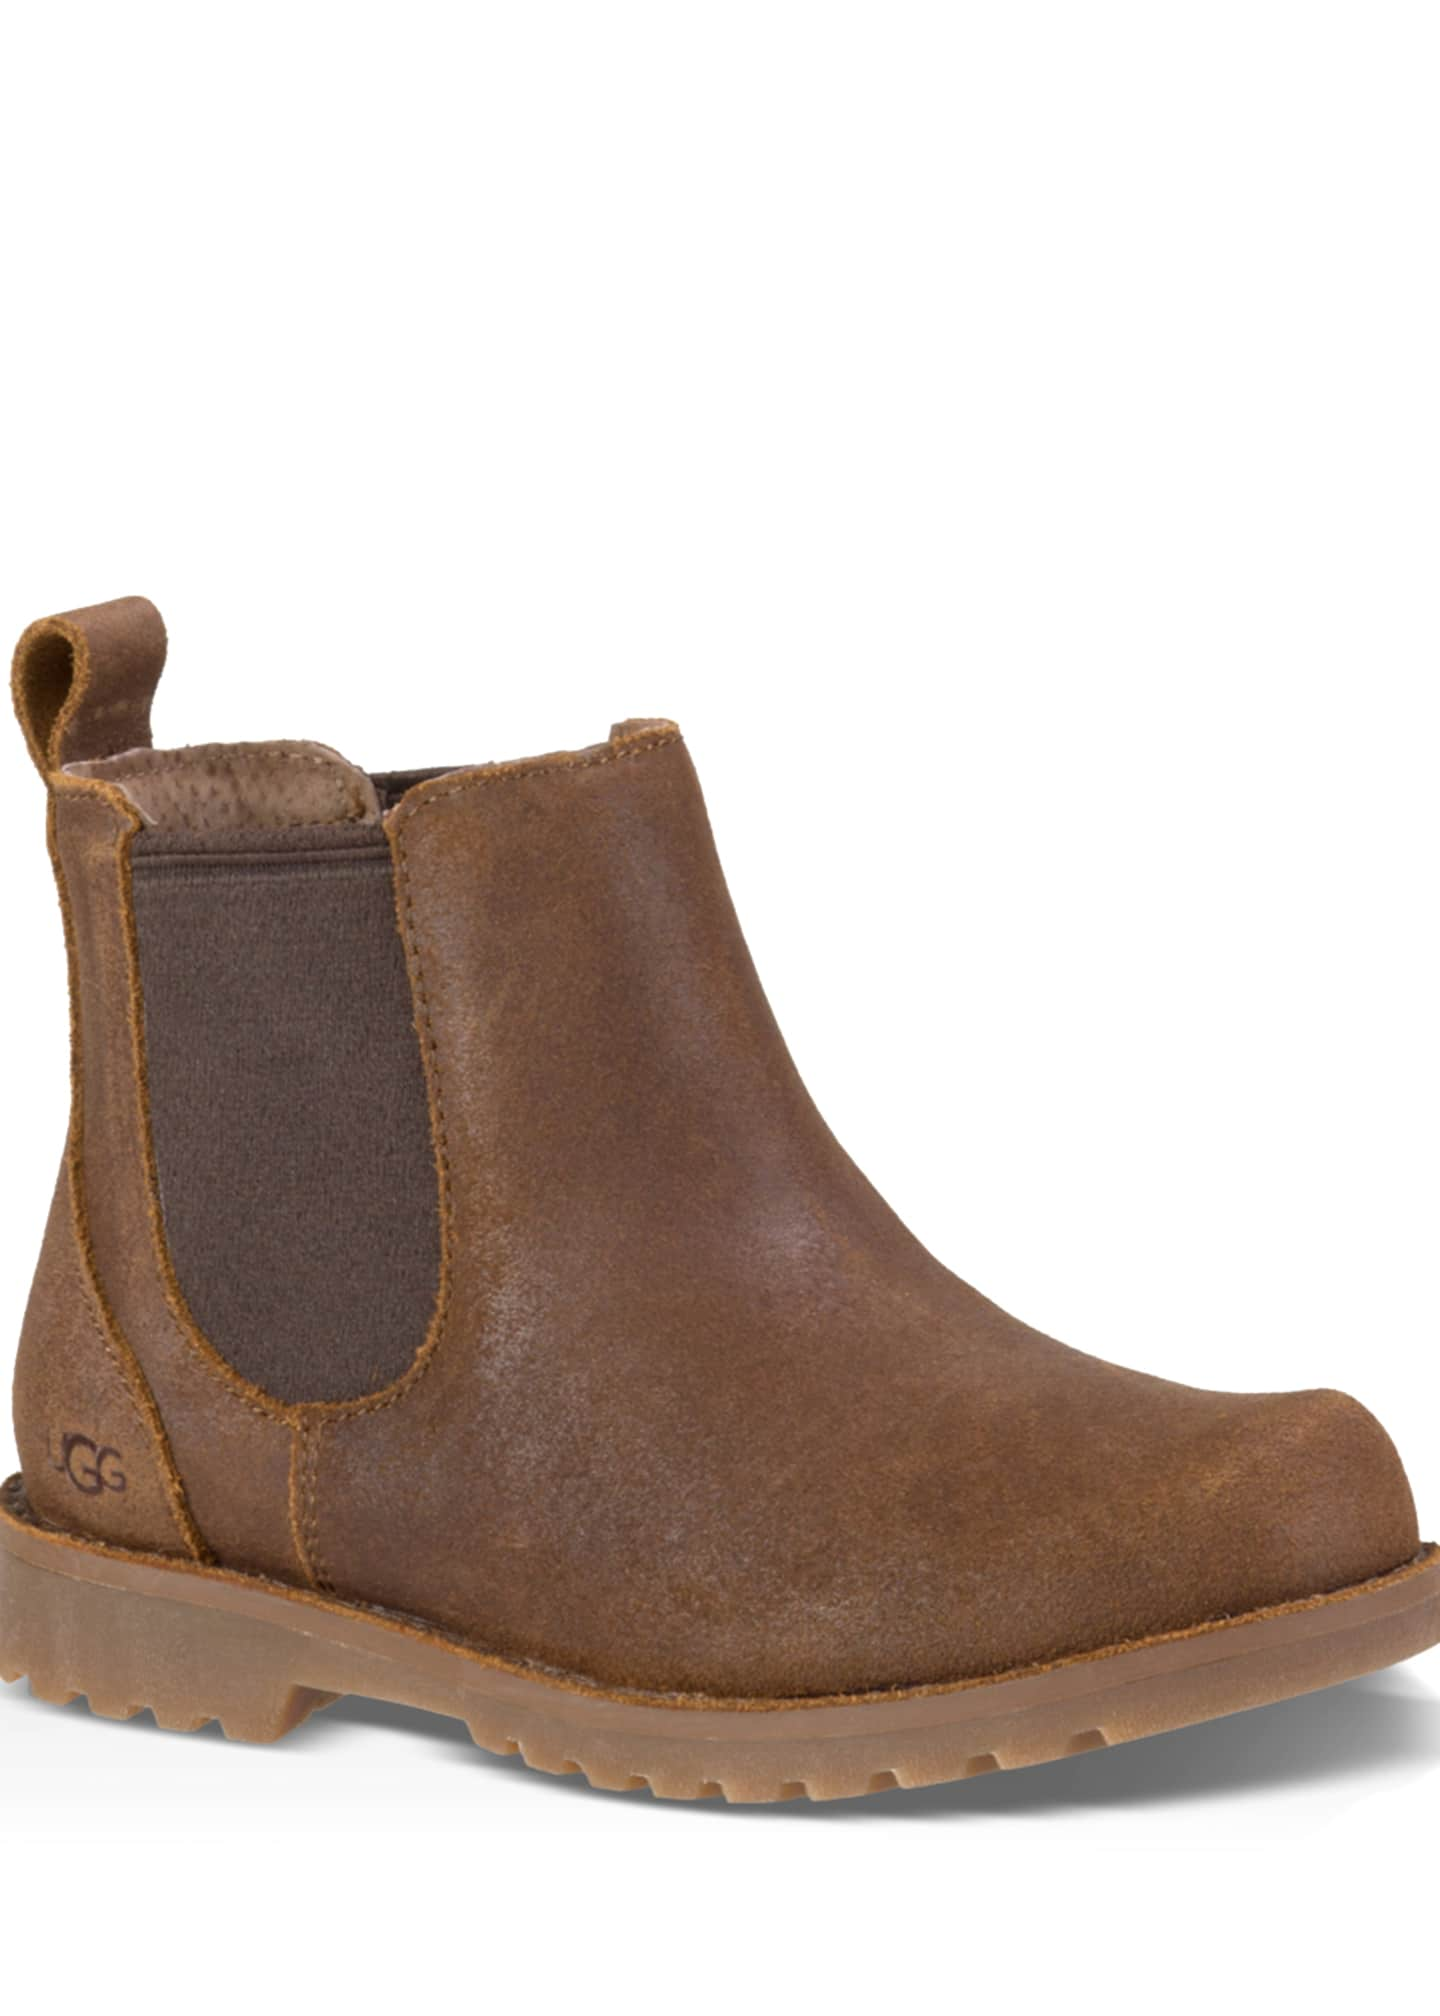 UGG Callum Leather Chelsea Boots, Kids